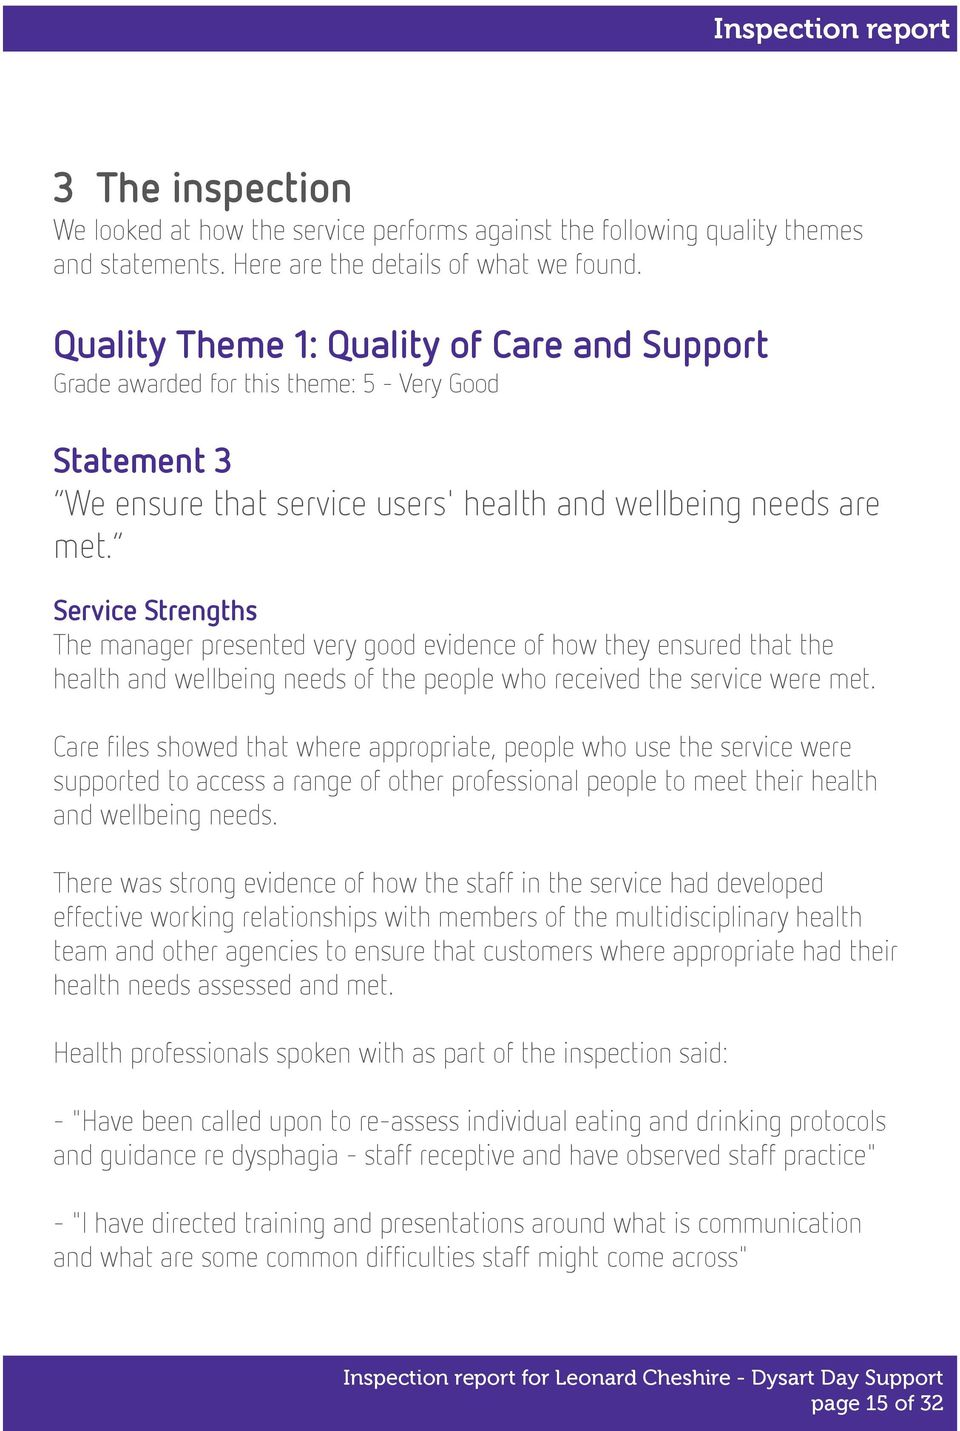 Service Strengths The manager presented very good evidence of how they ensured that the health and wellbeing needs of the people who received the service were met.